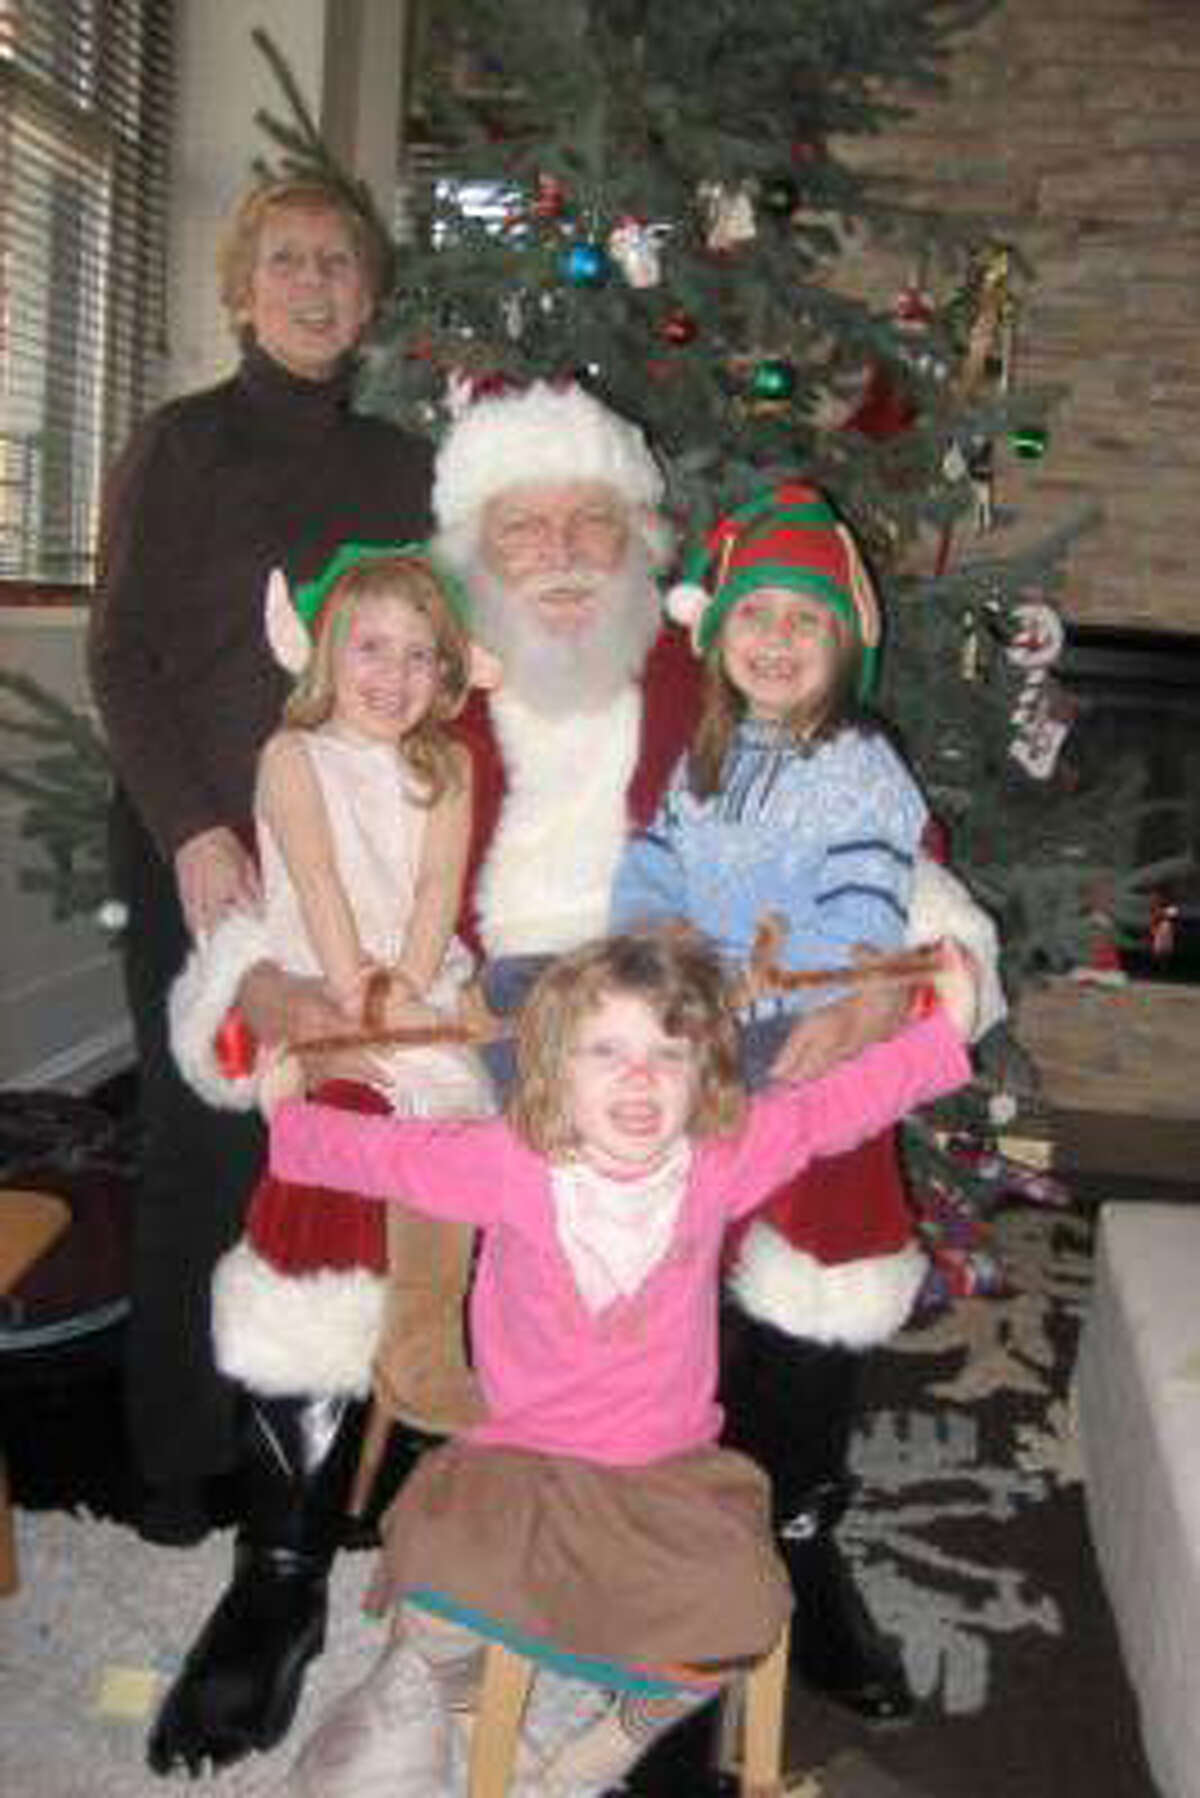 Courtesy of the Johnson family A photograph taken from the Web site gigmasters.com showing the five victims from the Christmas morning fire at Madonna Badger's home : Lomer Johnson, dressed as Santa; his wife, Pauline; and their granddaughters, Sarah, Grace, and Lily Badger, left to right.